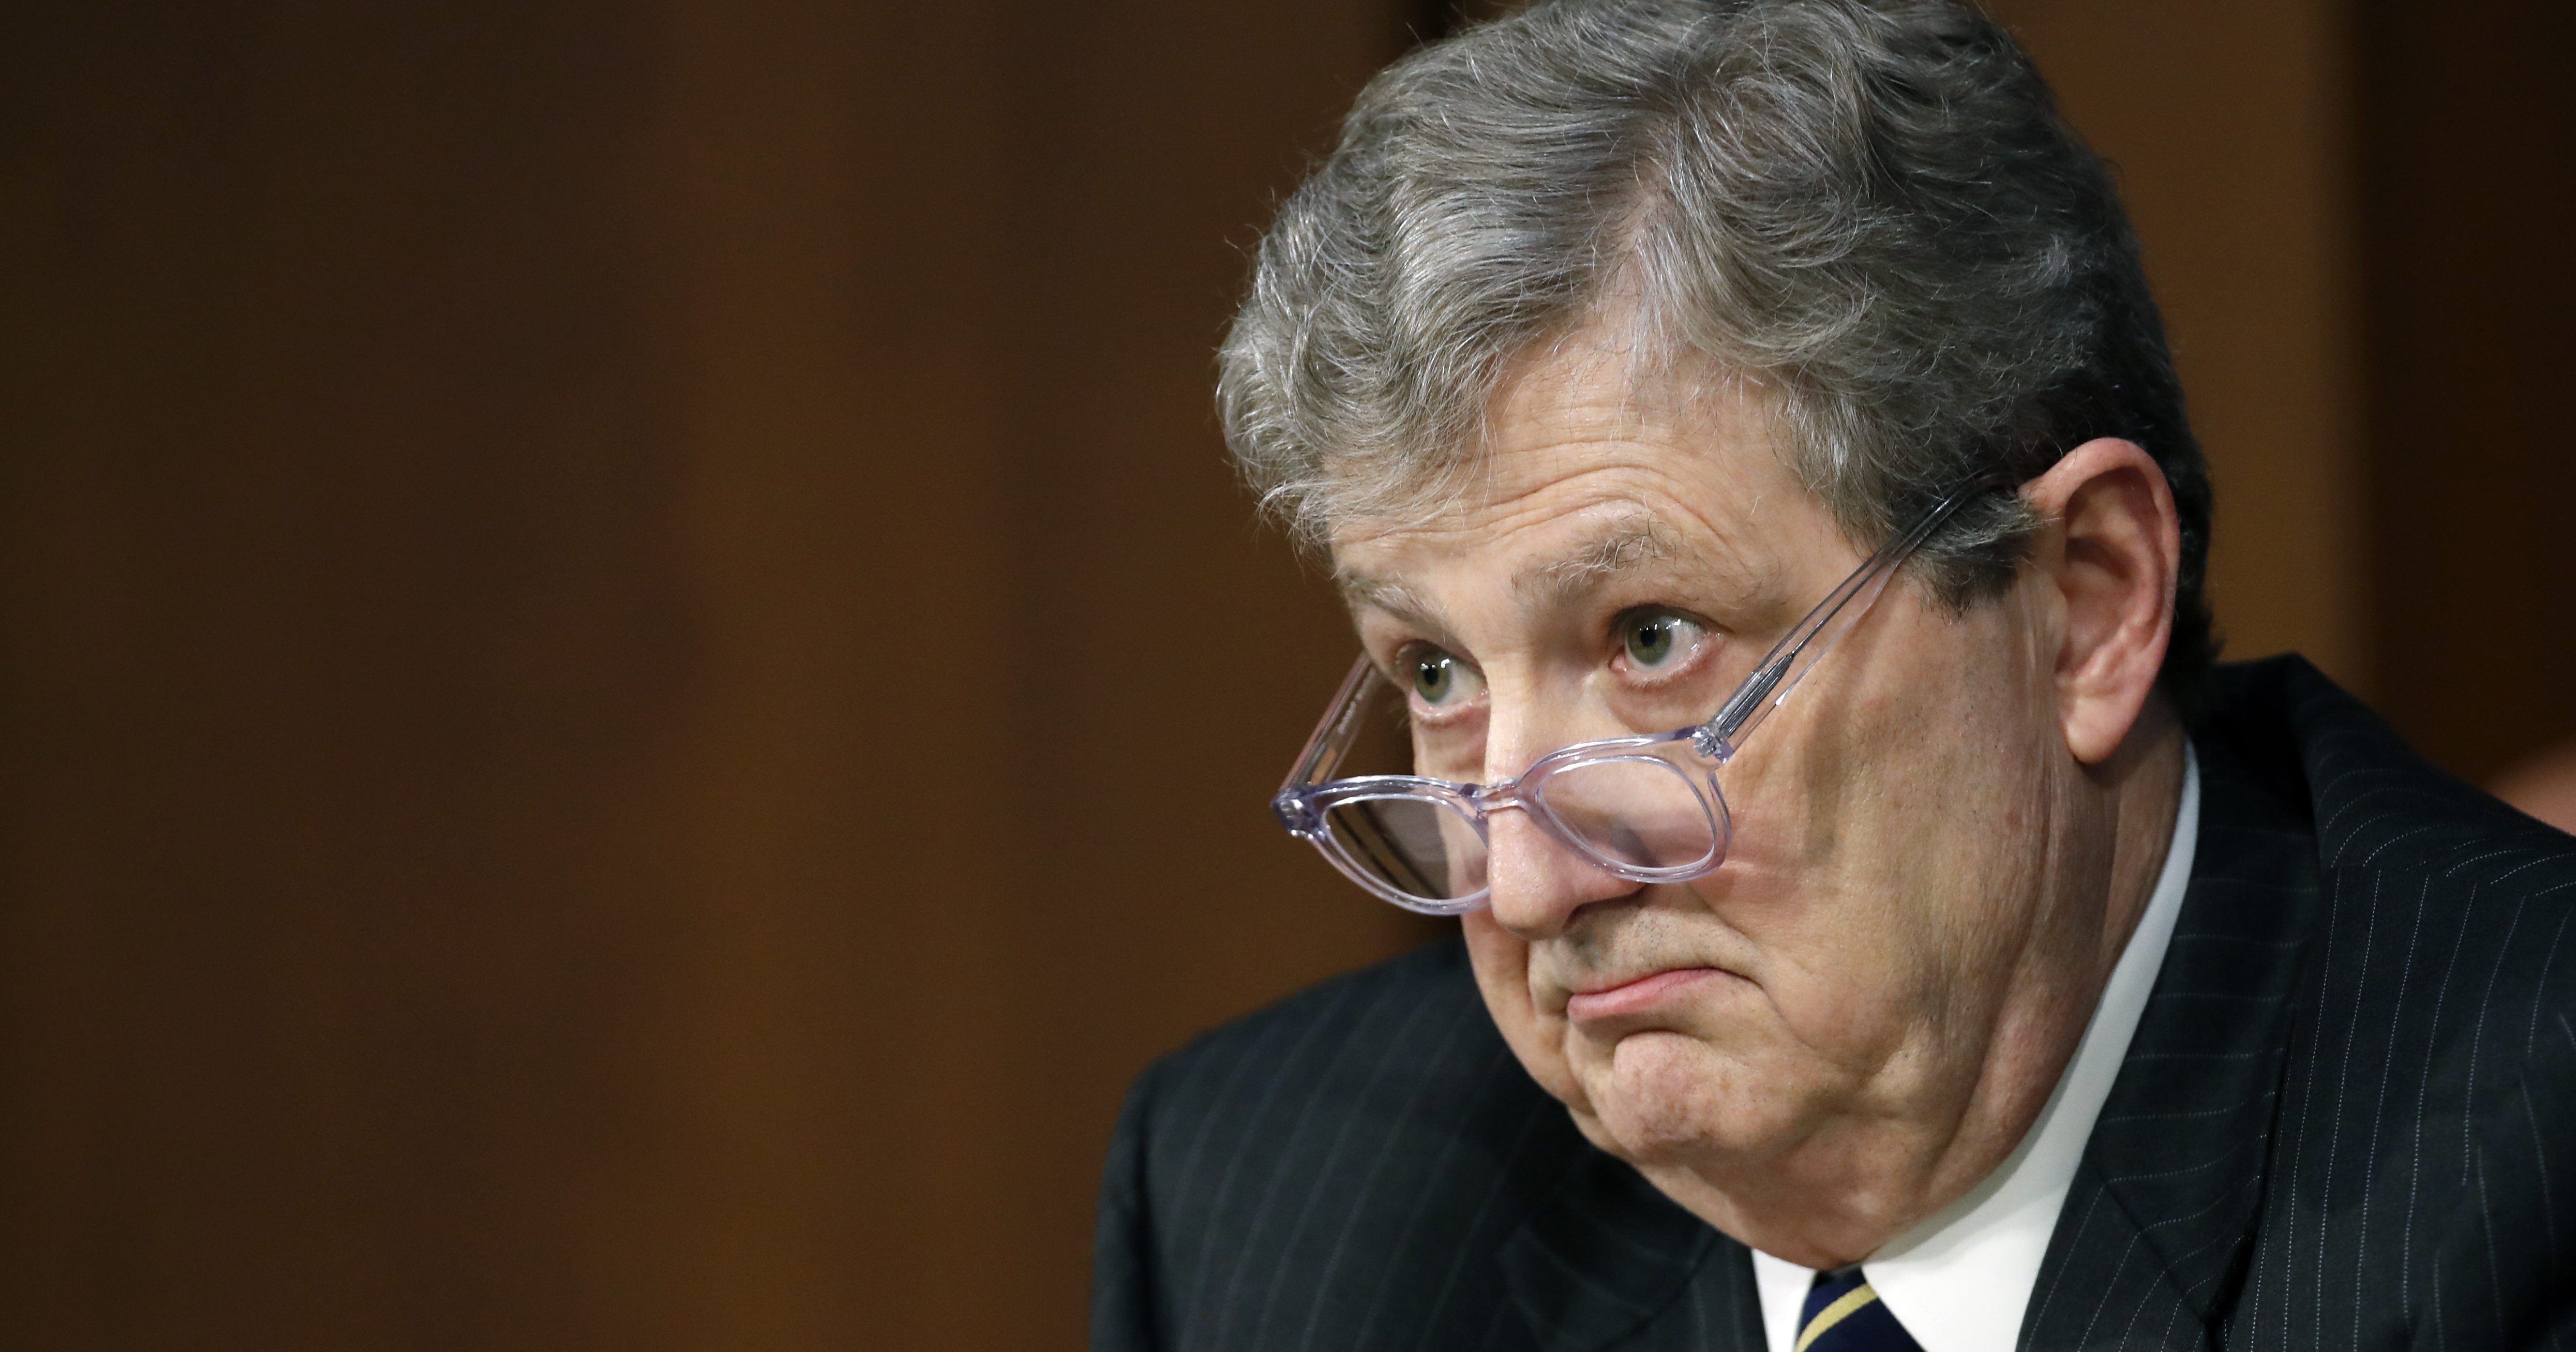 Sen. John Kennedy, R-La., listens during a hearing on Capitol Hill in Washington.